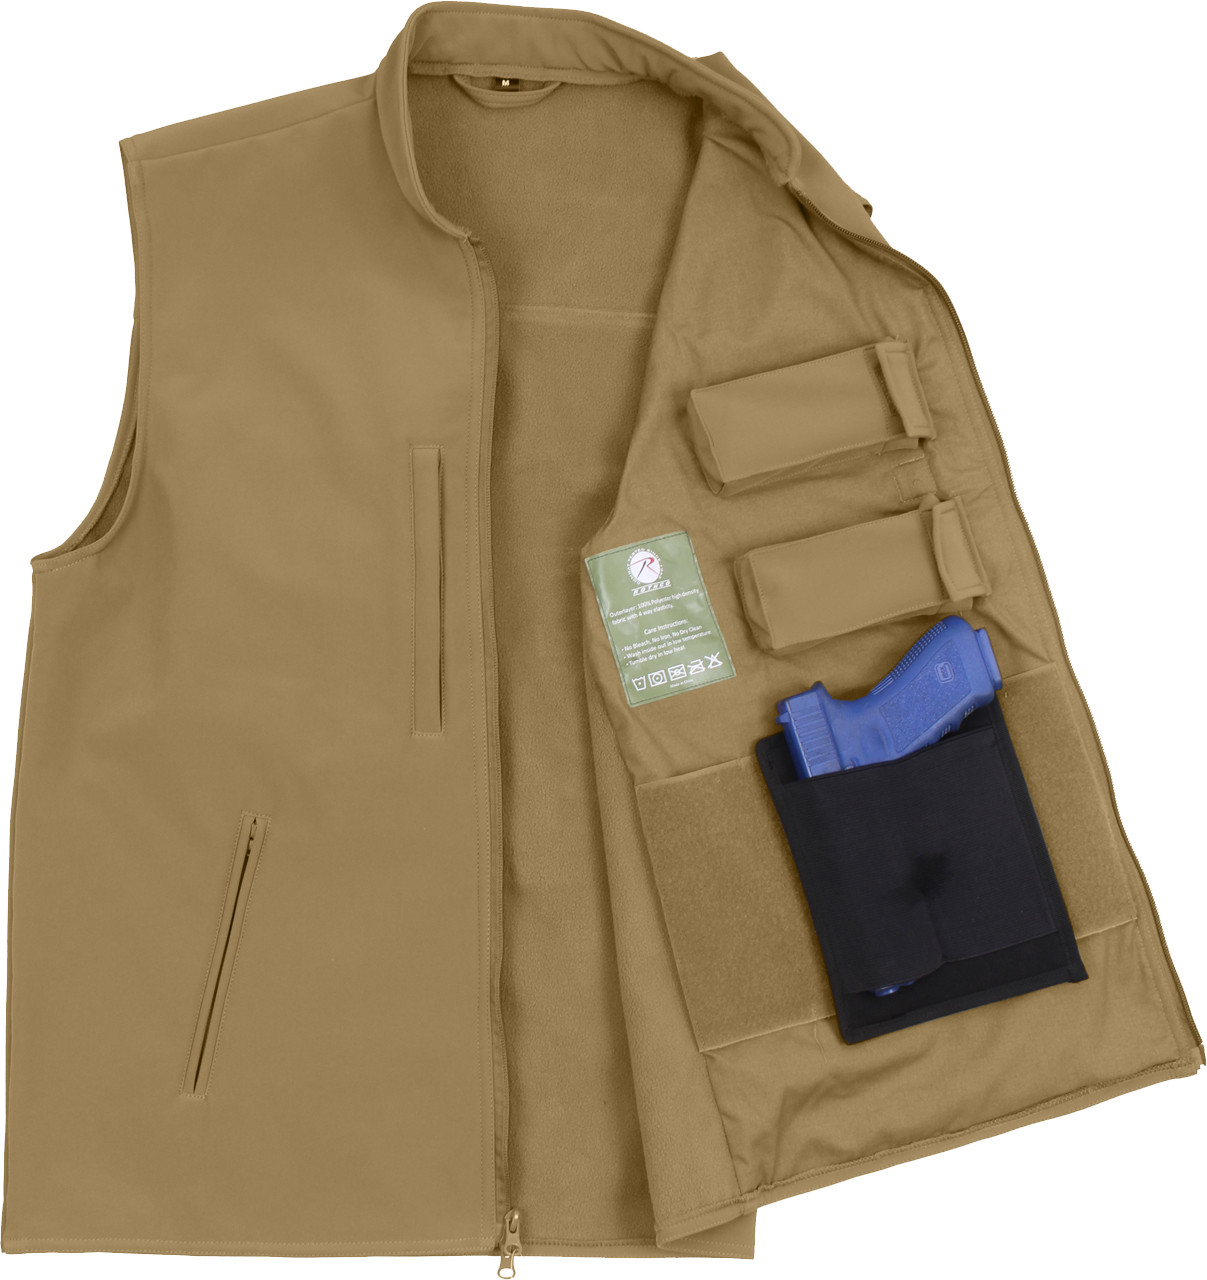 More Views. Coyote Brown Military Concealed Soft Shell Tactical Carry Vest feac806ac10